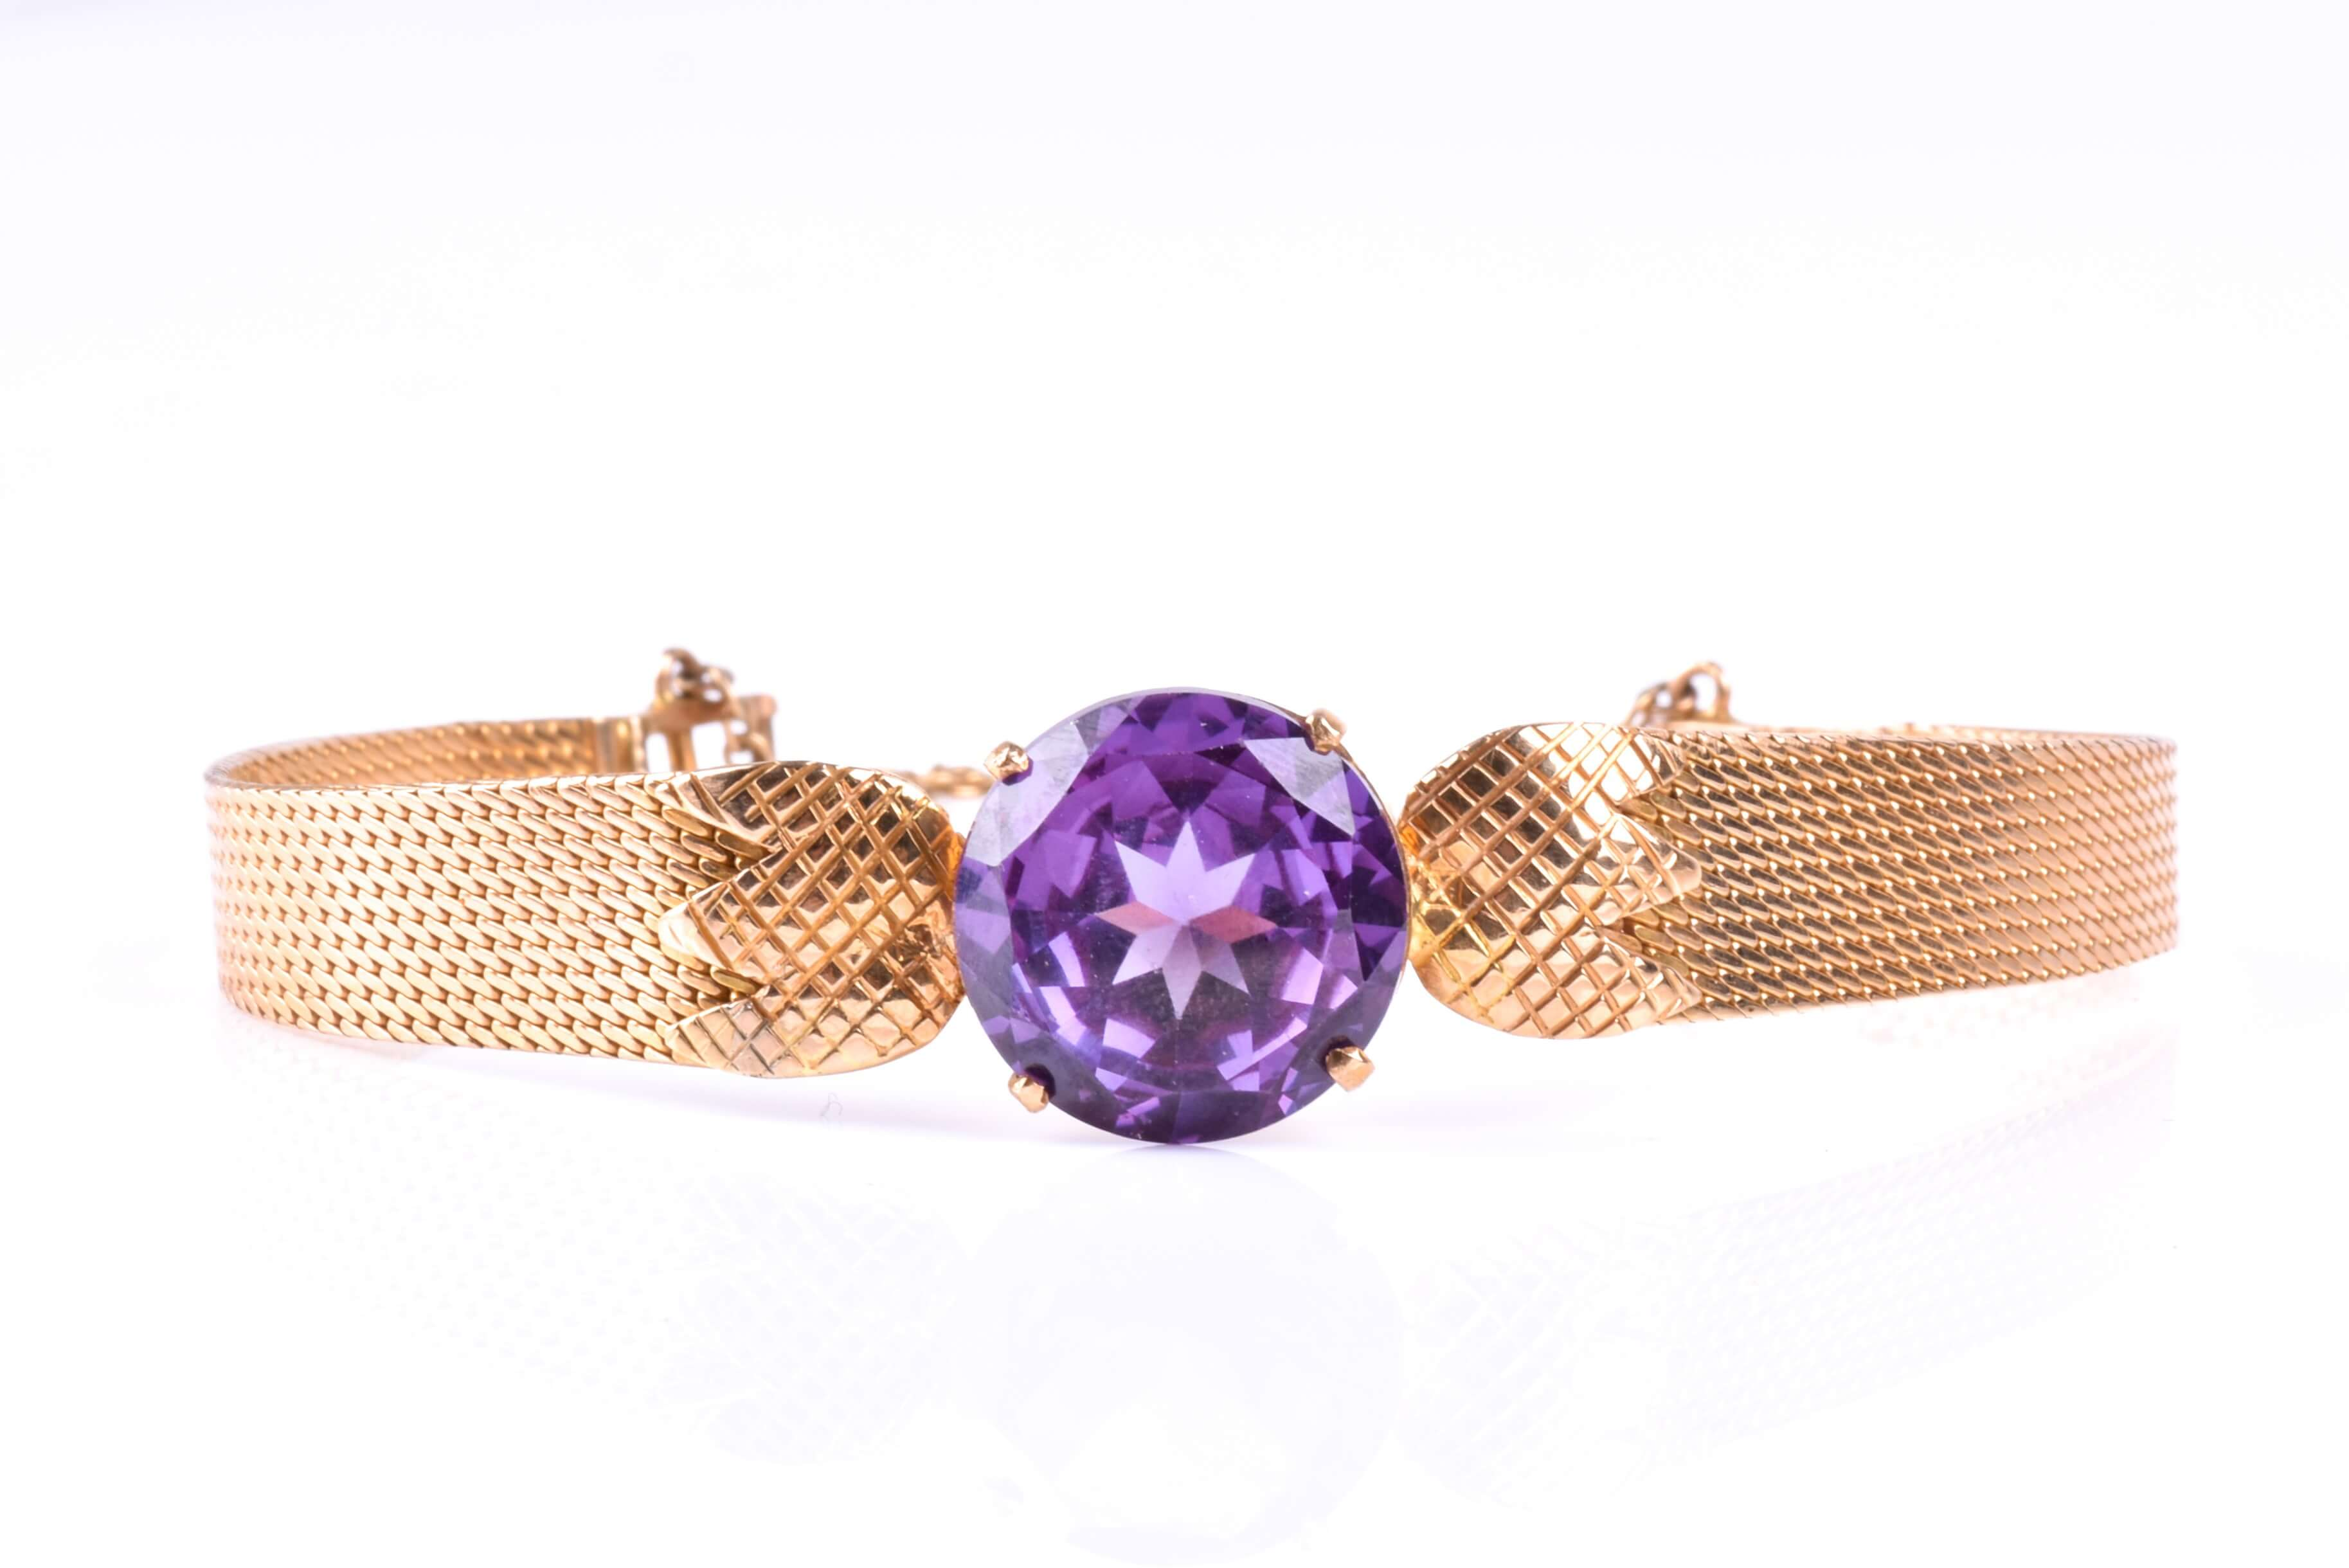 A yellow metal and synthetic corundum bracelet with Alexandrite-style stone